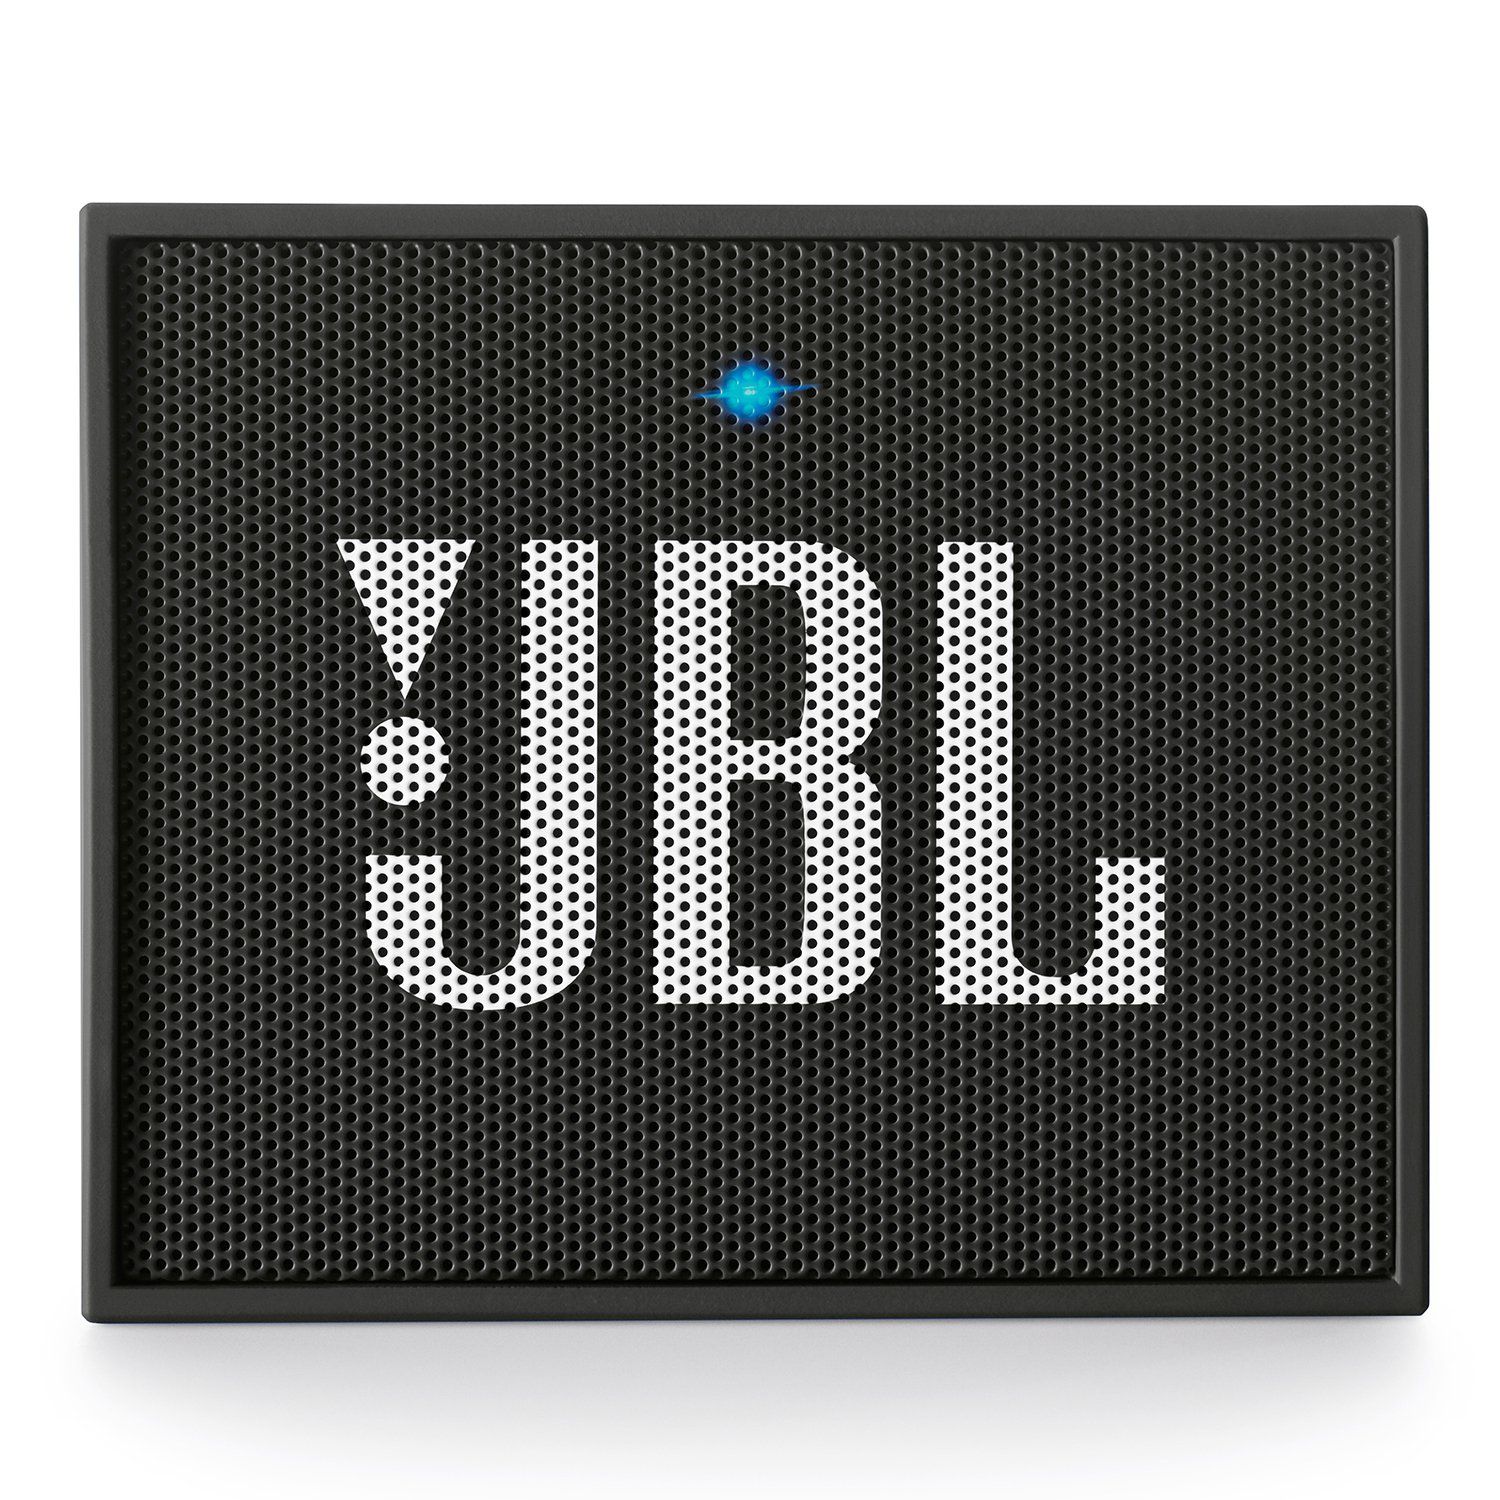 JBL GO Portable Mini Wireless Bluetooth Speaker Rechargeable with Speakerphone